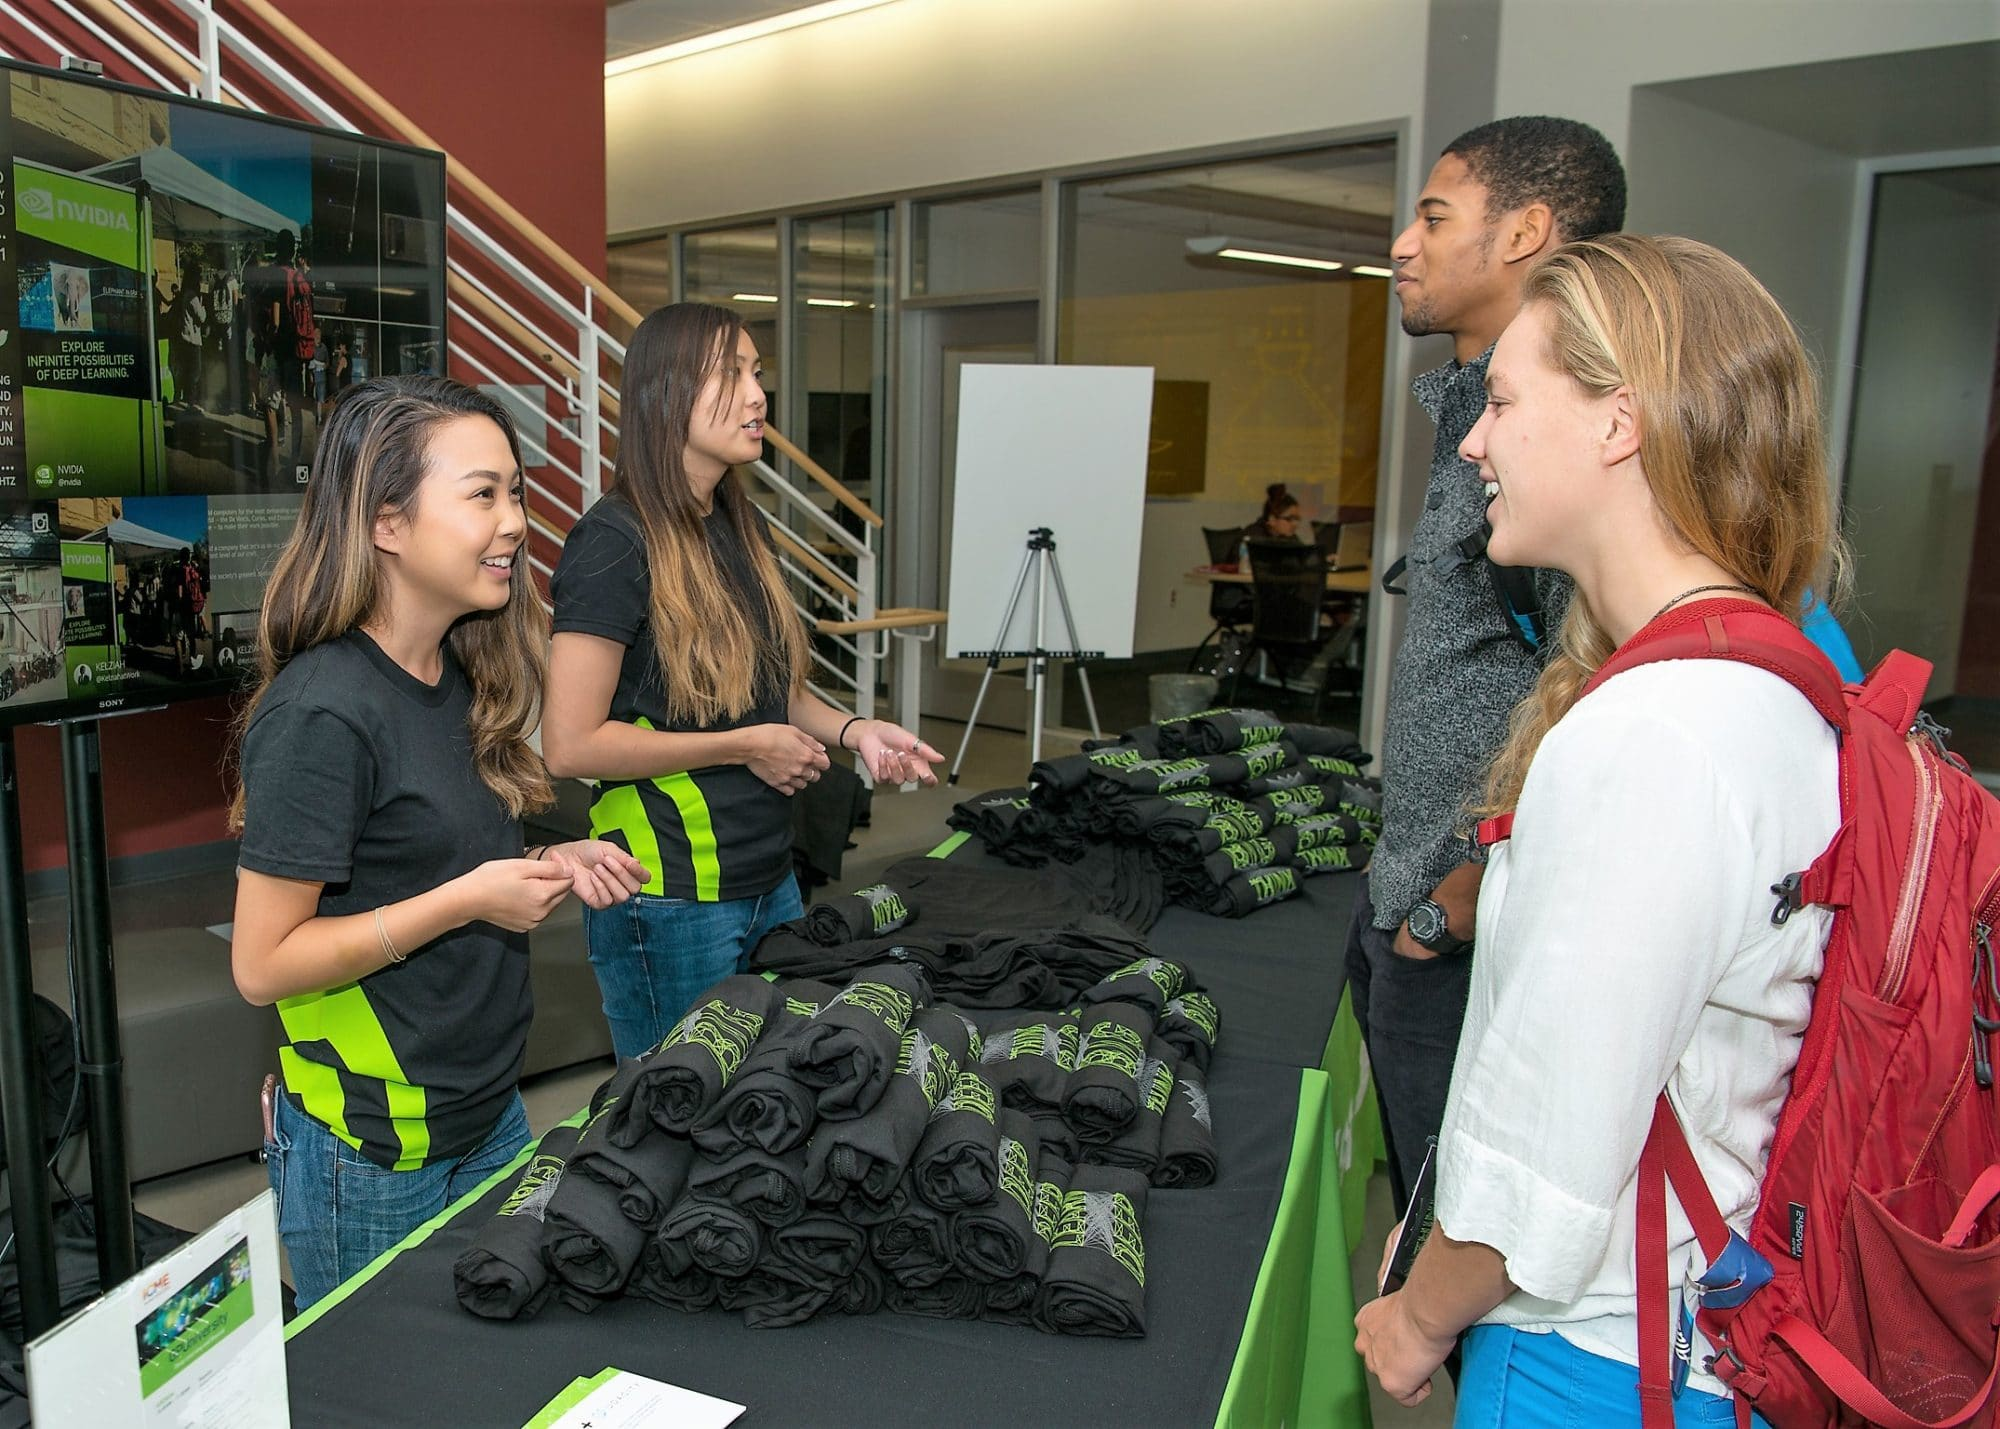 T-shirt giveaway during NVIDIA college recruiting event.